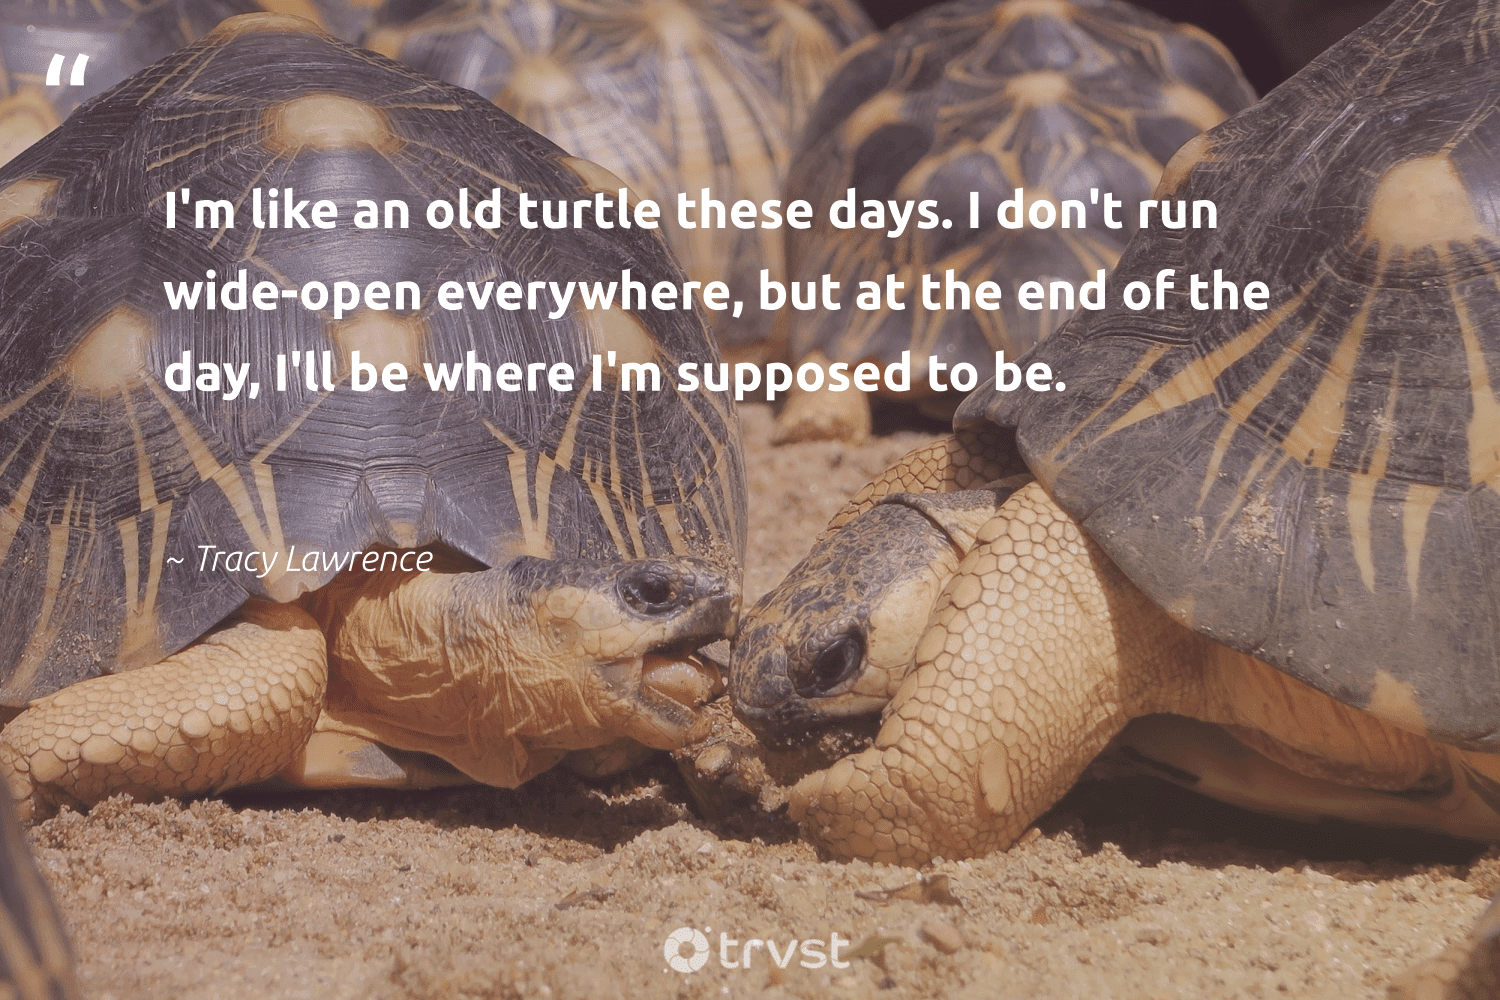 """""""I'm like an old turtle these days. I don't run wide-open everywhere, but at the end of the day, I'll be where I'm supposed to be.""""  - Tracy Lawrence #trvst #quotes #turtle #healthyocean #collectiveaction #protecttheoceans #planetearthfirst #savetheoceans #impact #oceans #beinspired #oceanlove"""